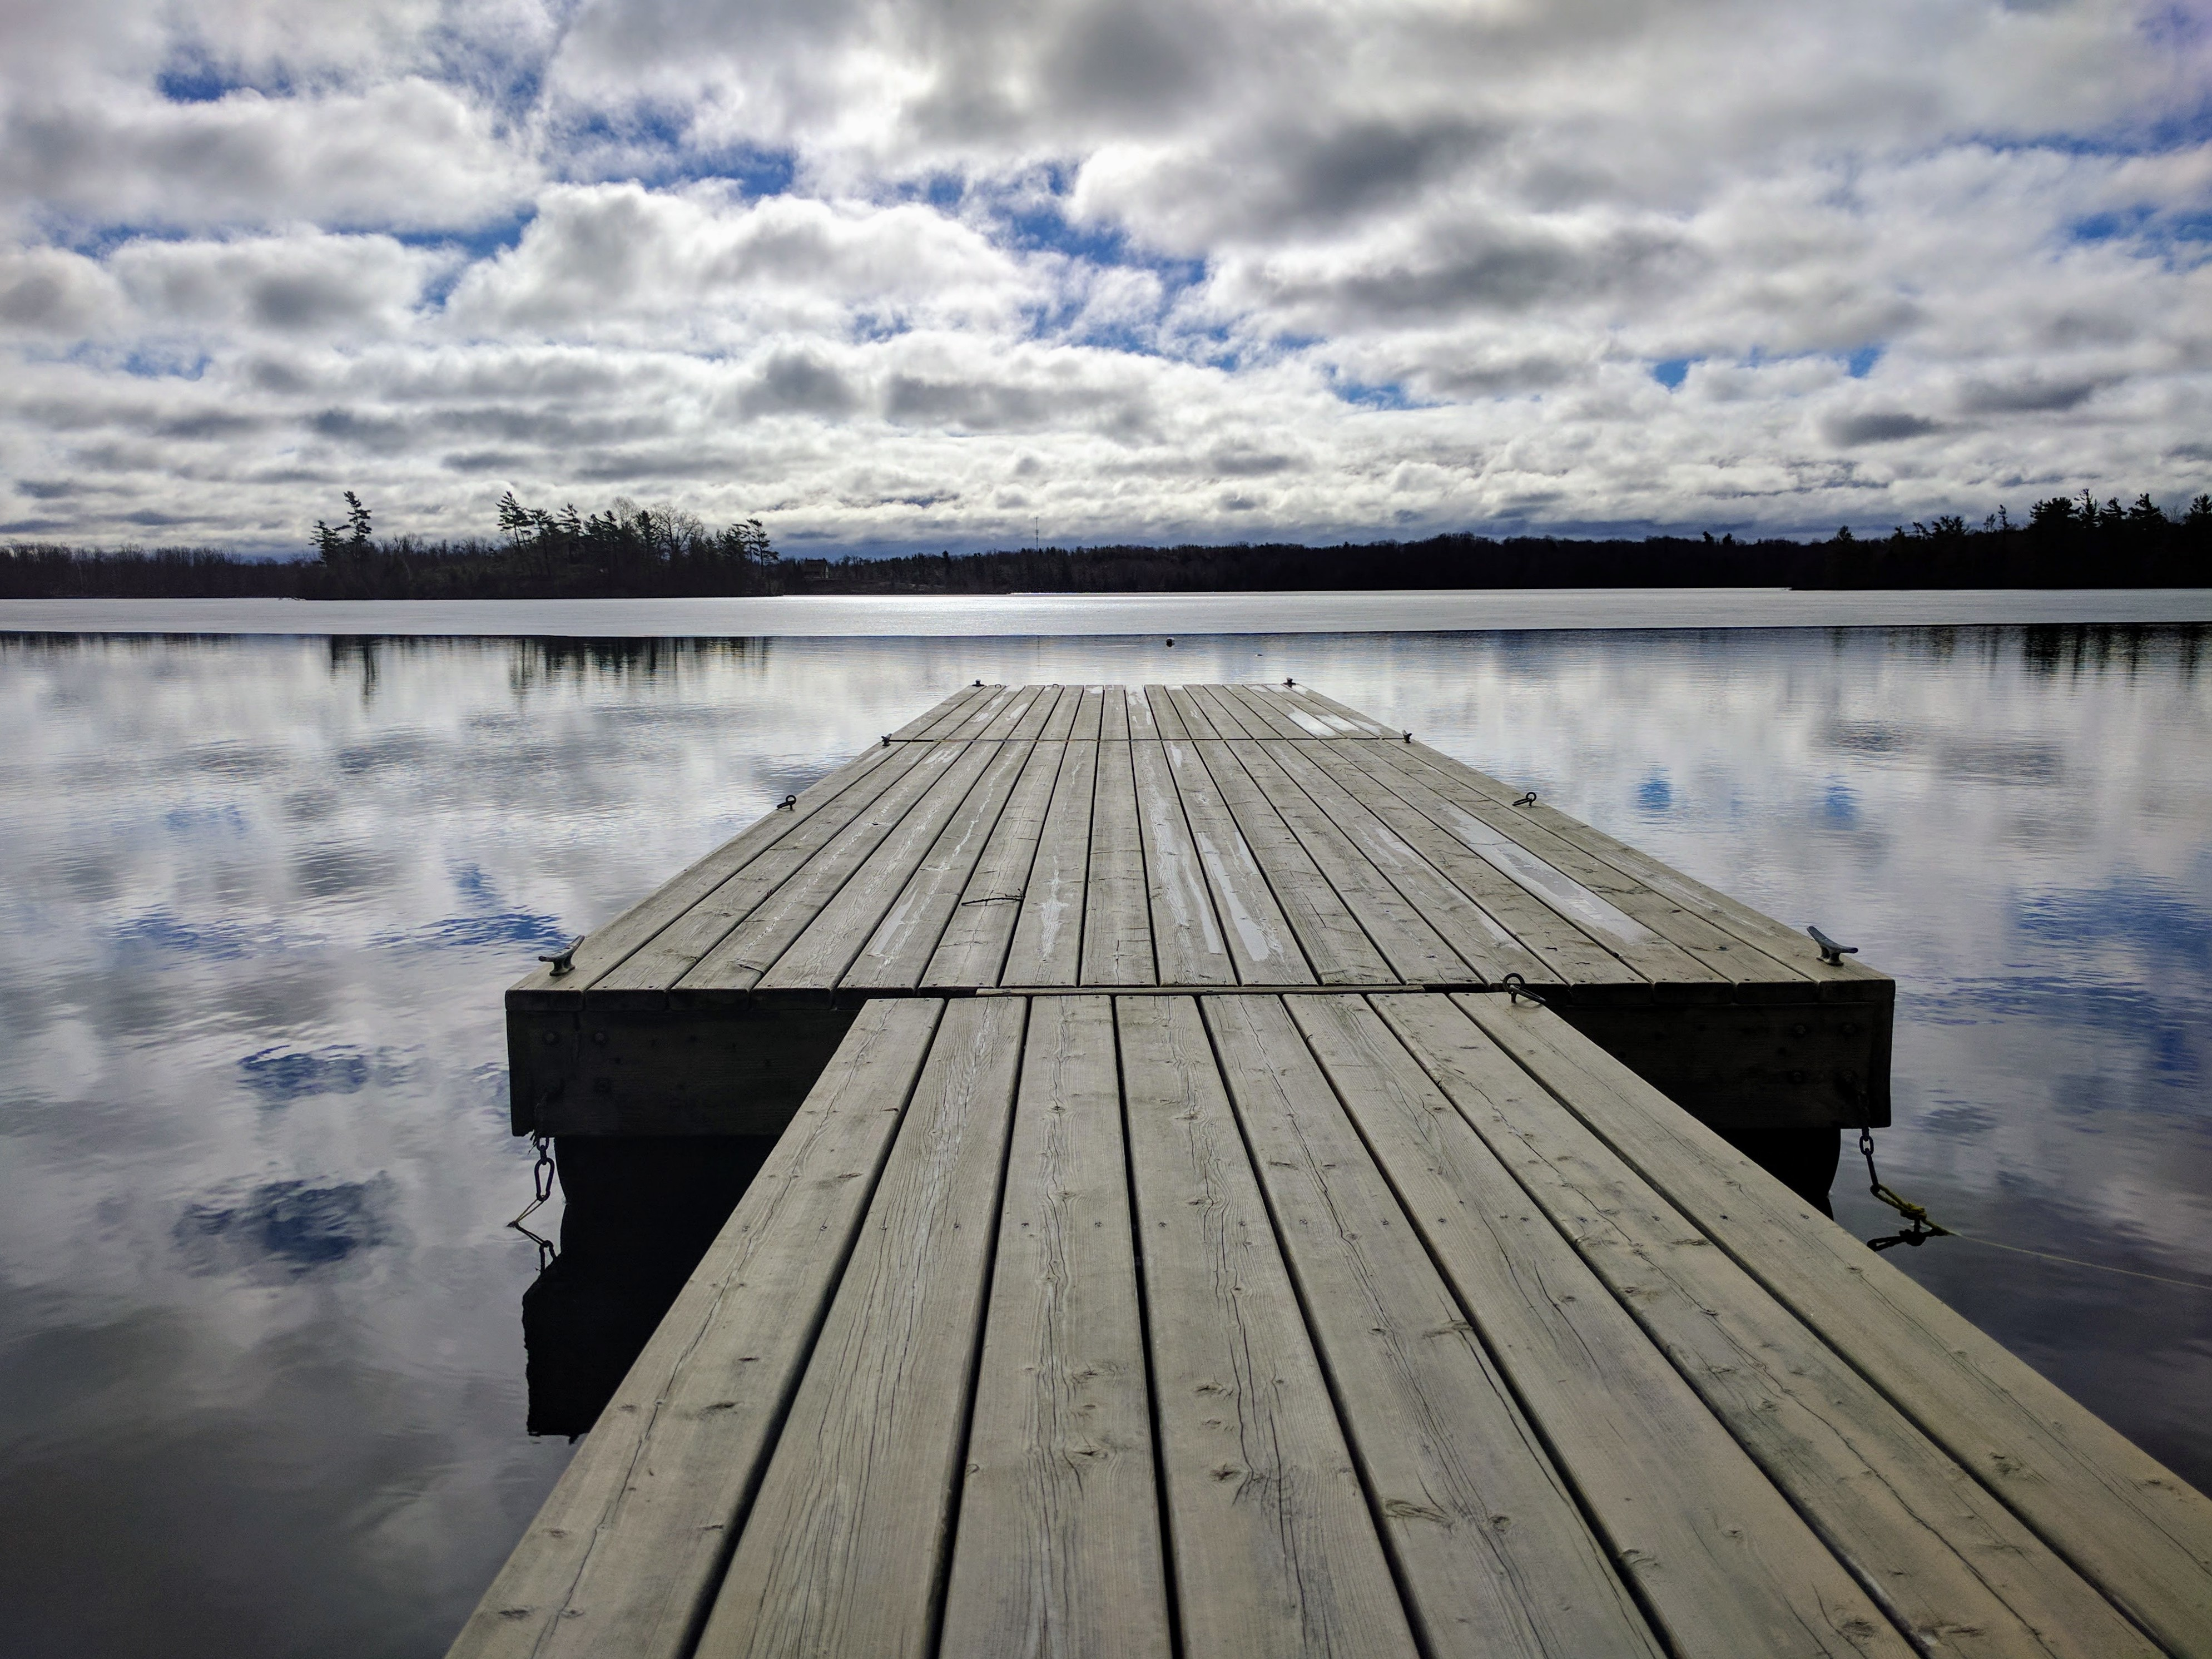 Looking along the dock